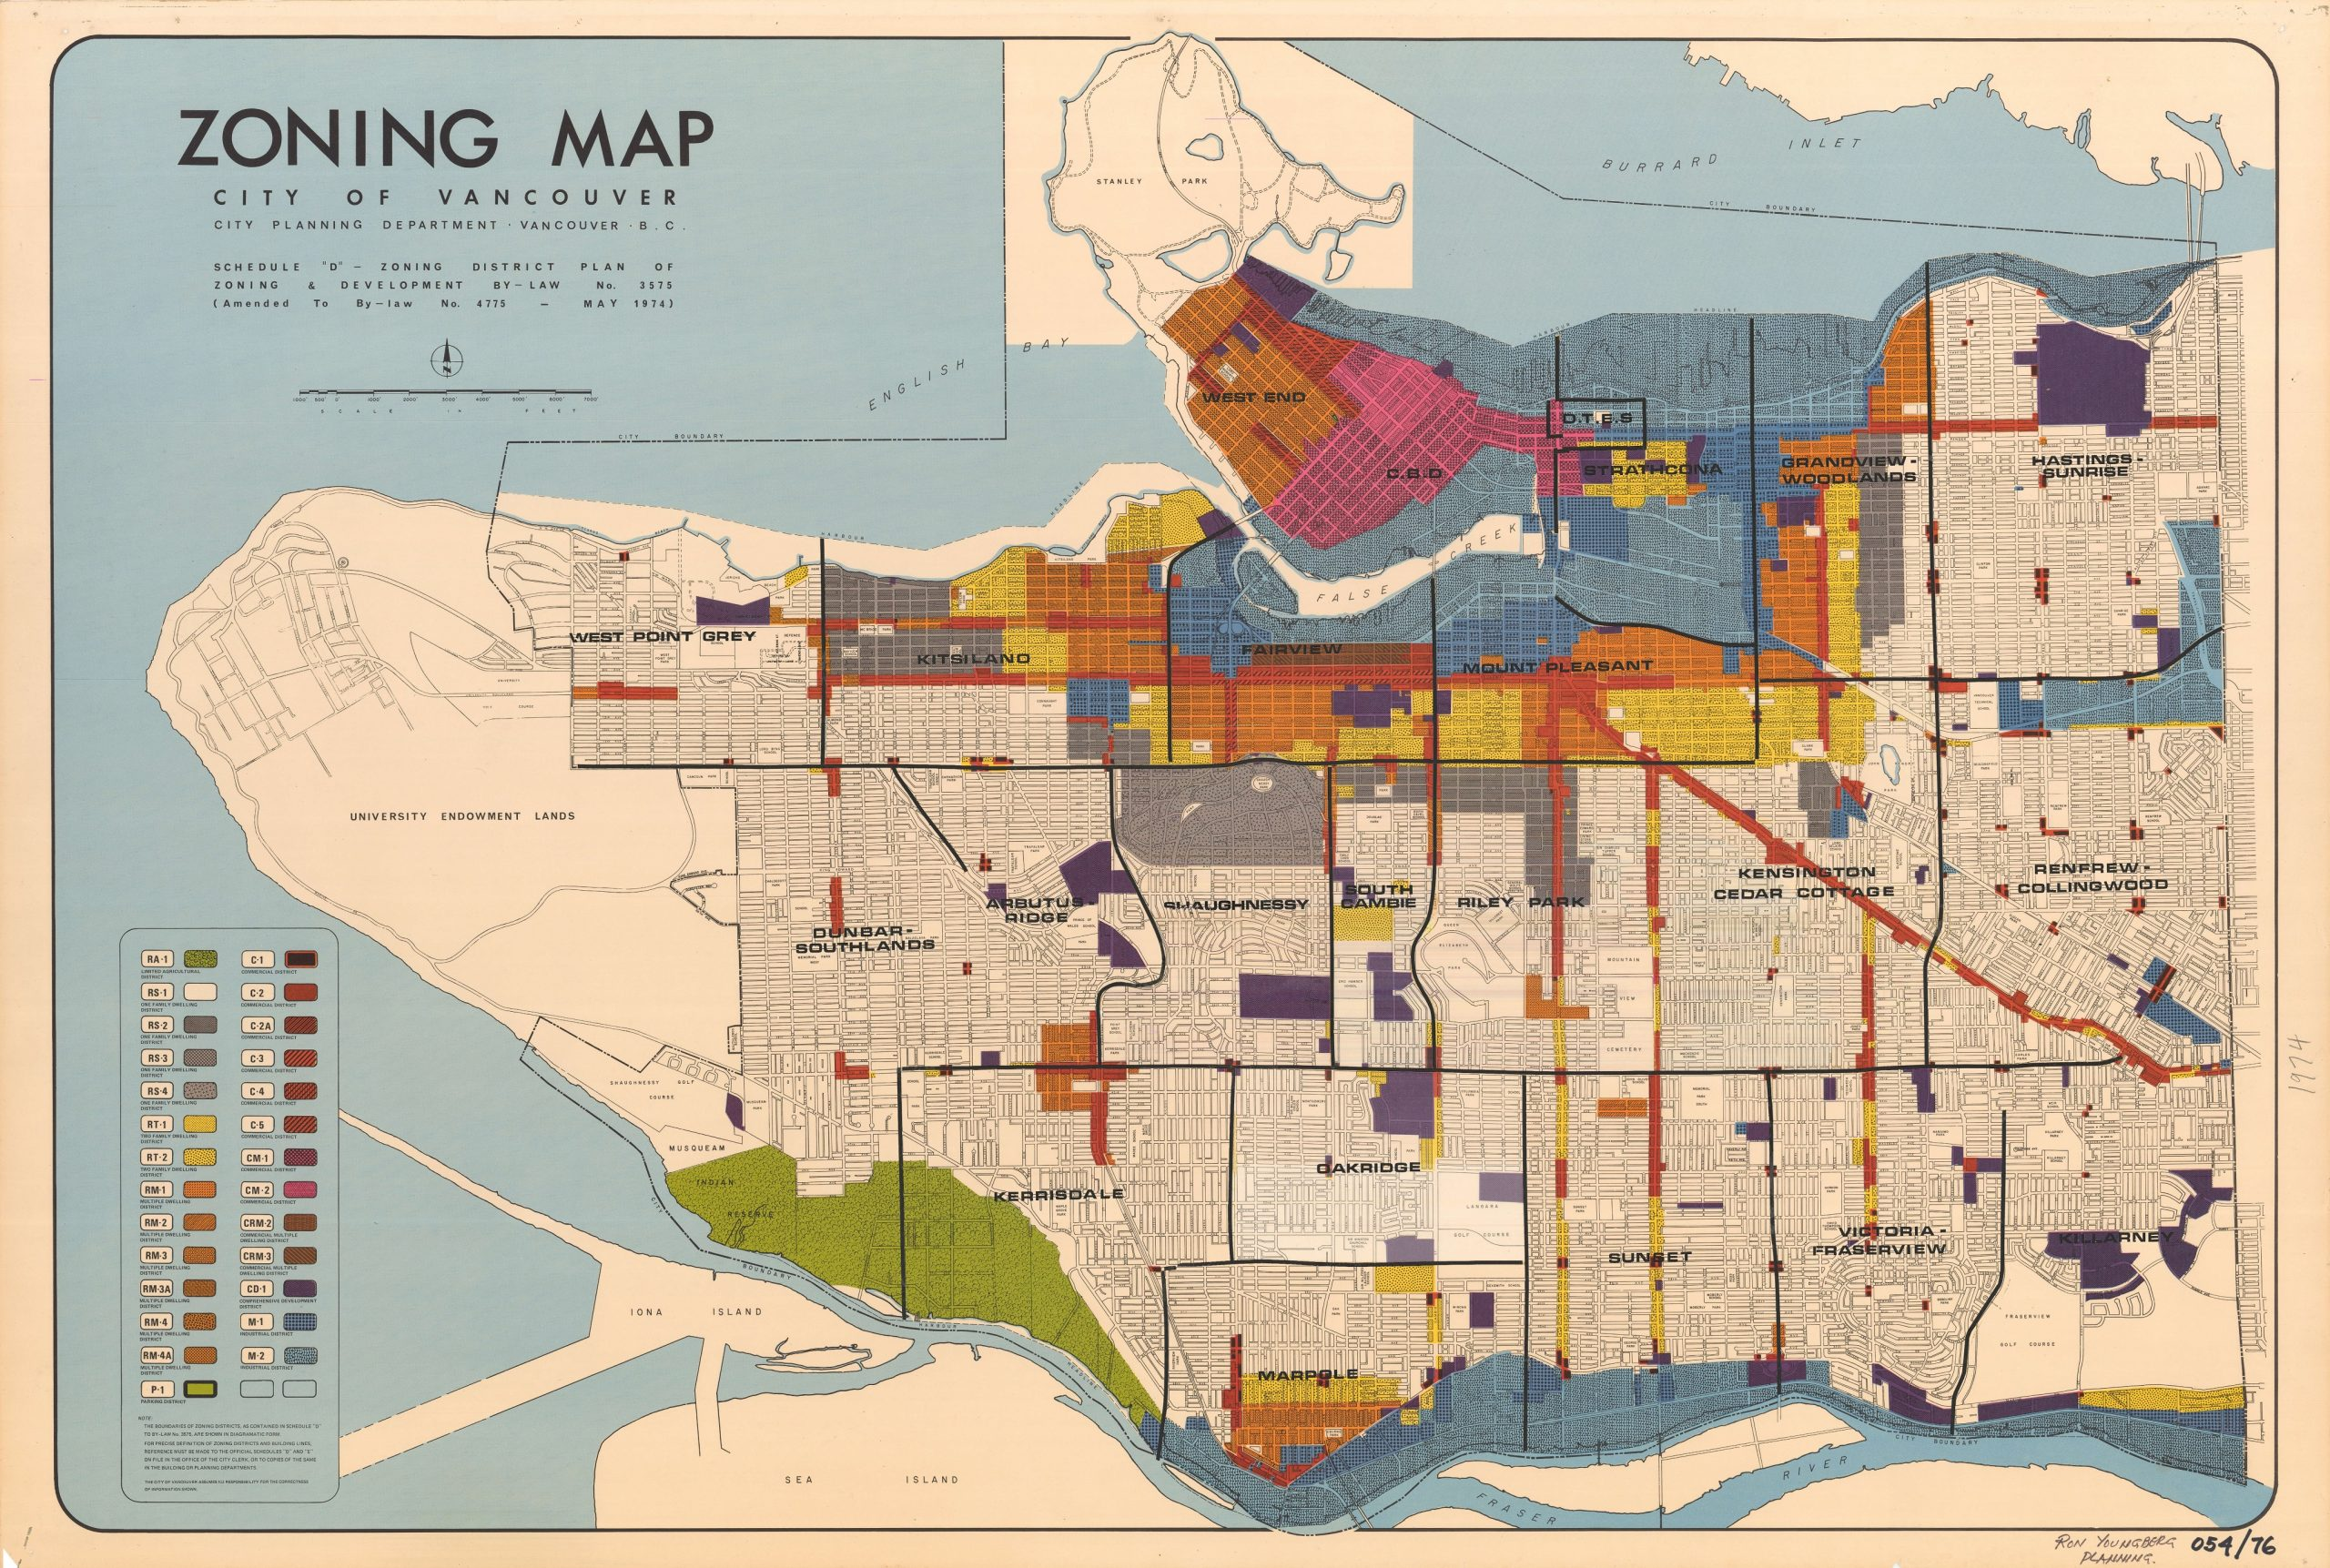 Zoning map from 1974. Reference code: PUB-: PD 2100.4